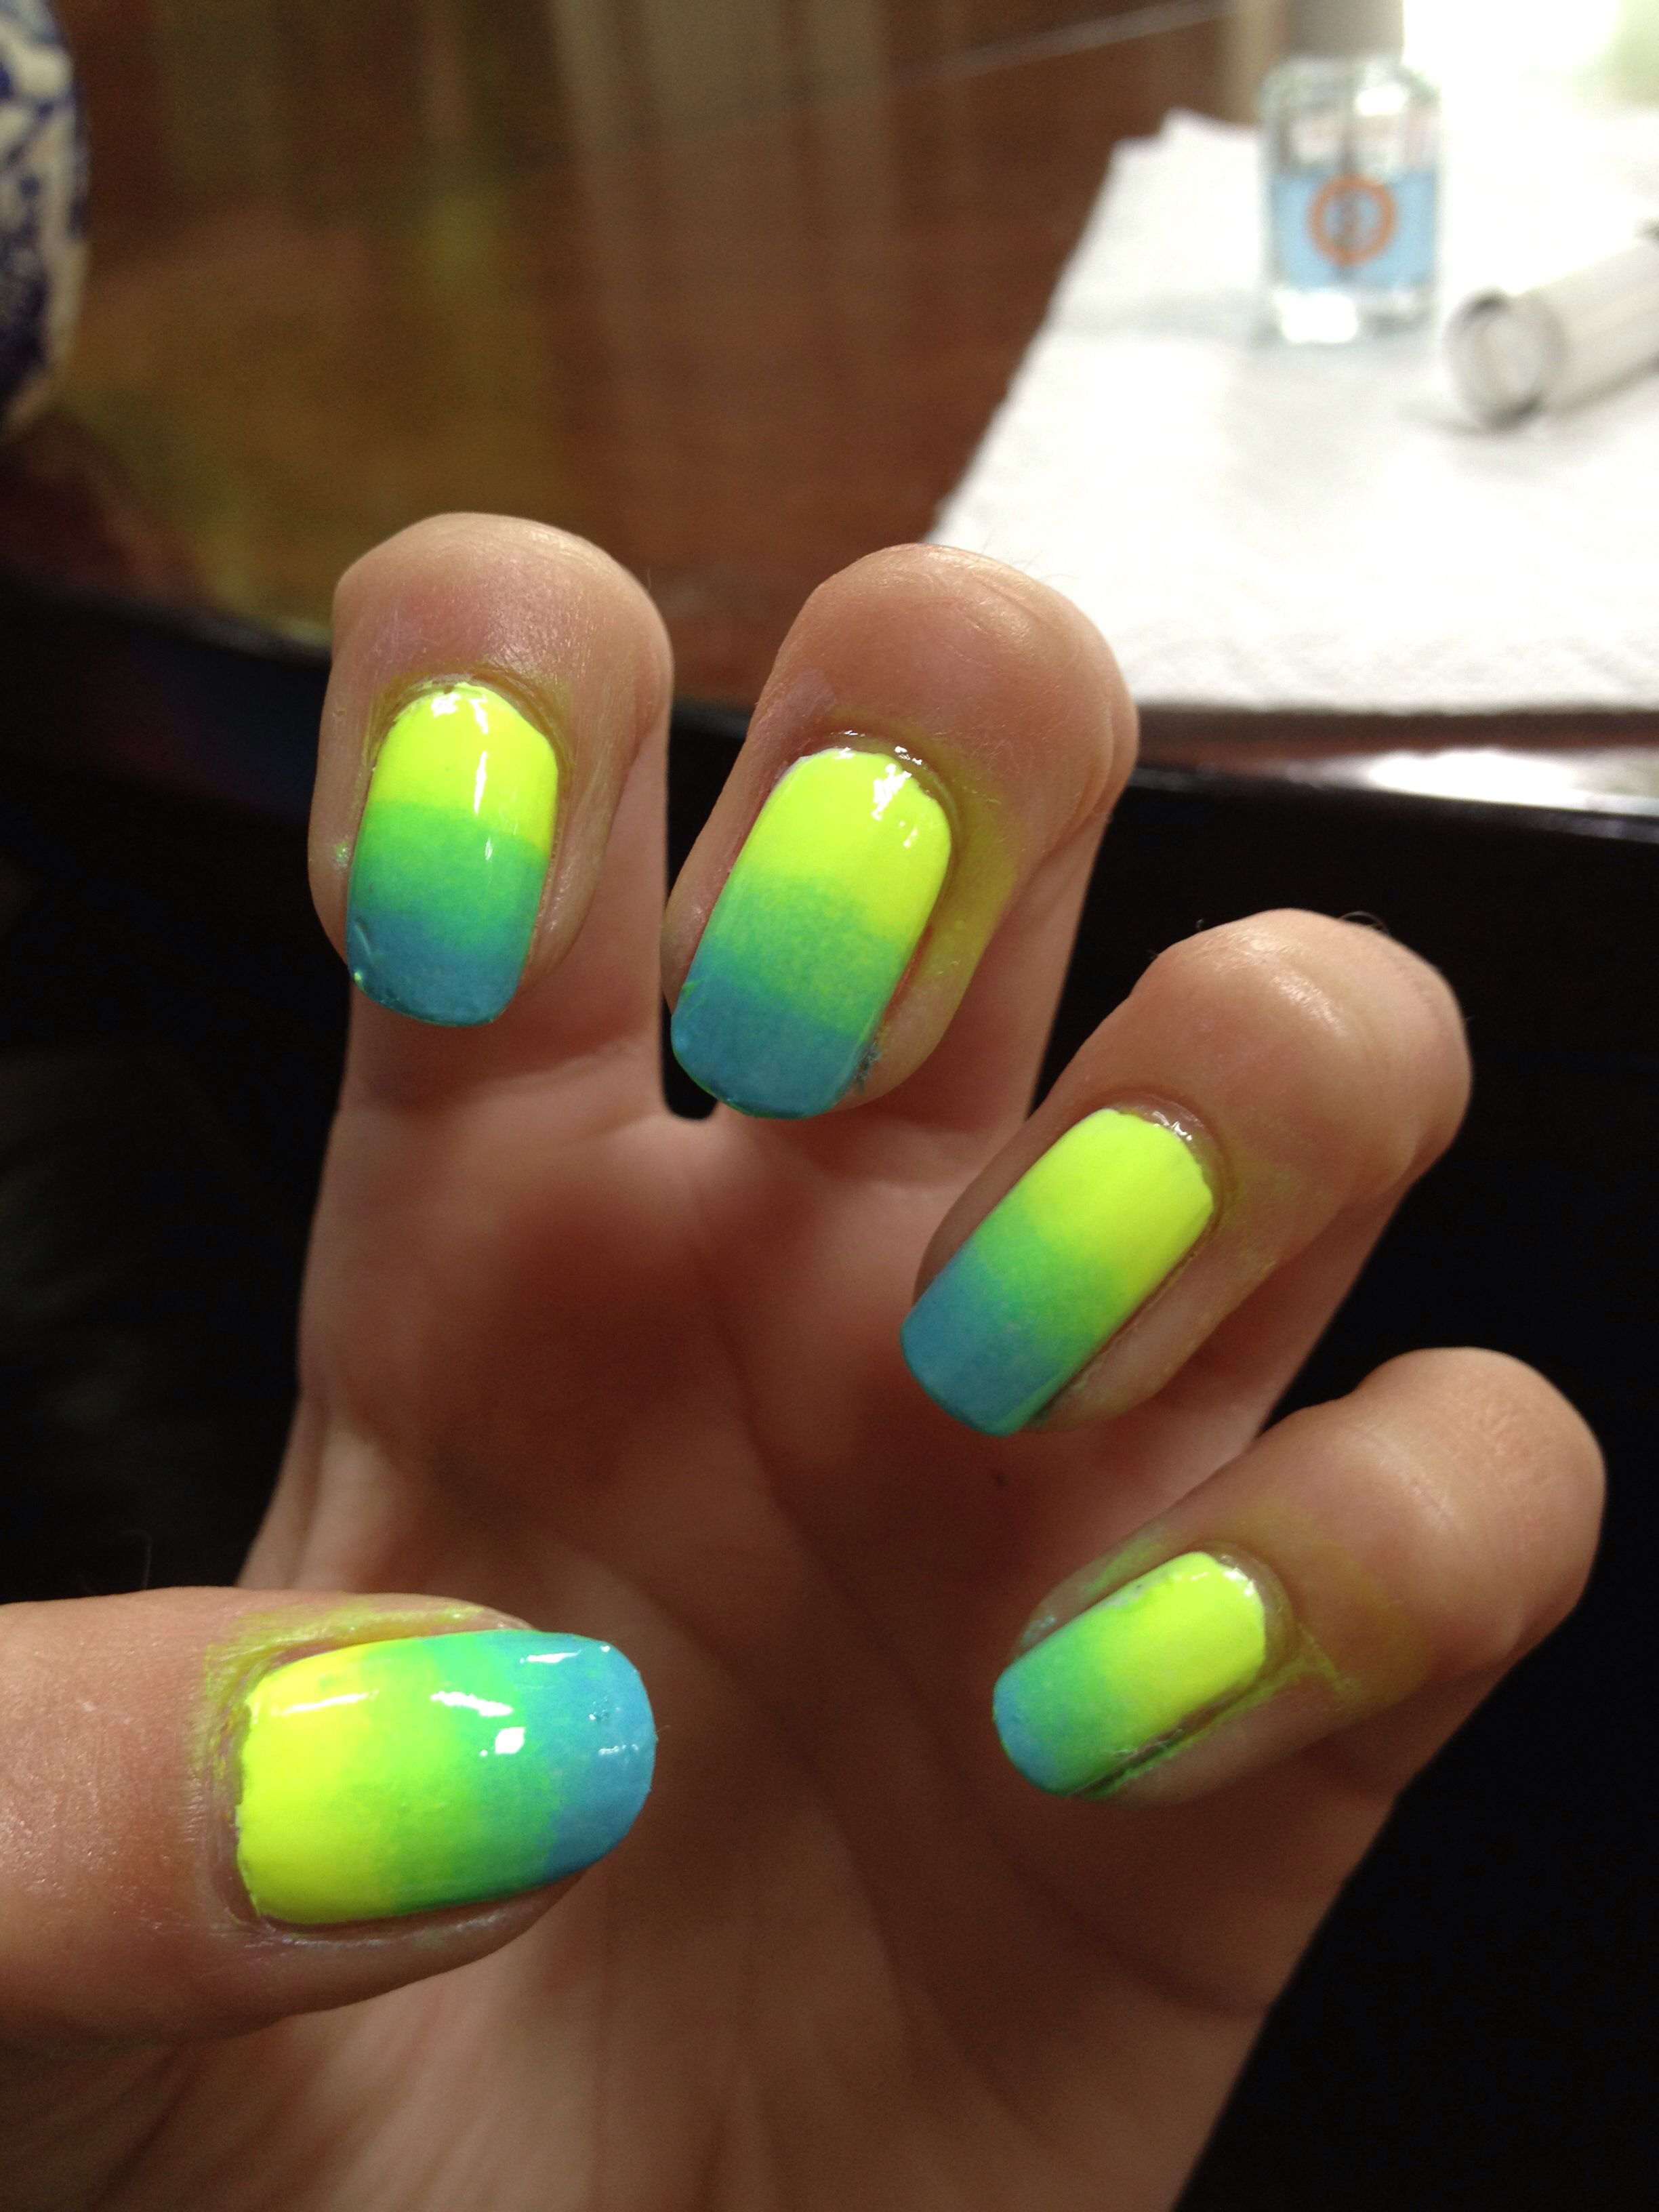 Blue And Yellow Nail Designs Nail Art Ombre Ombre Nail Art Designs Glitter Nail Art